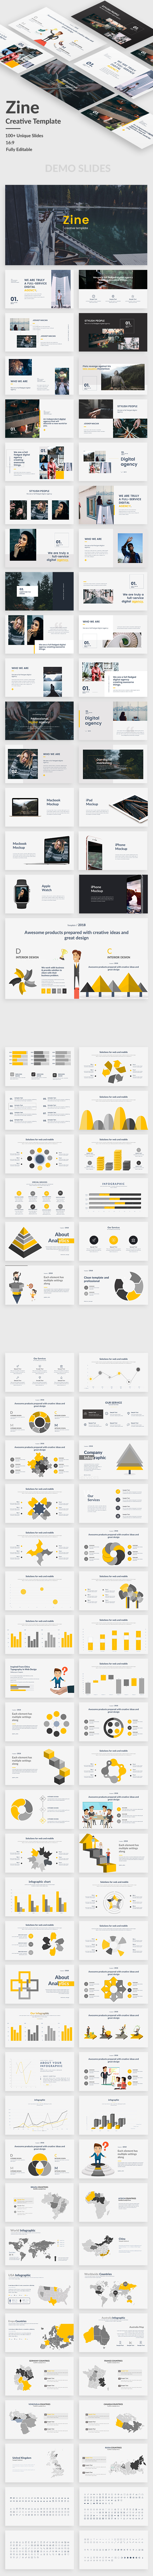 Zine Creative Powerpoint Template - Creative PowerPoint Templates